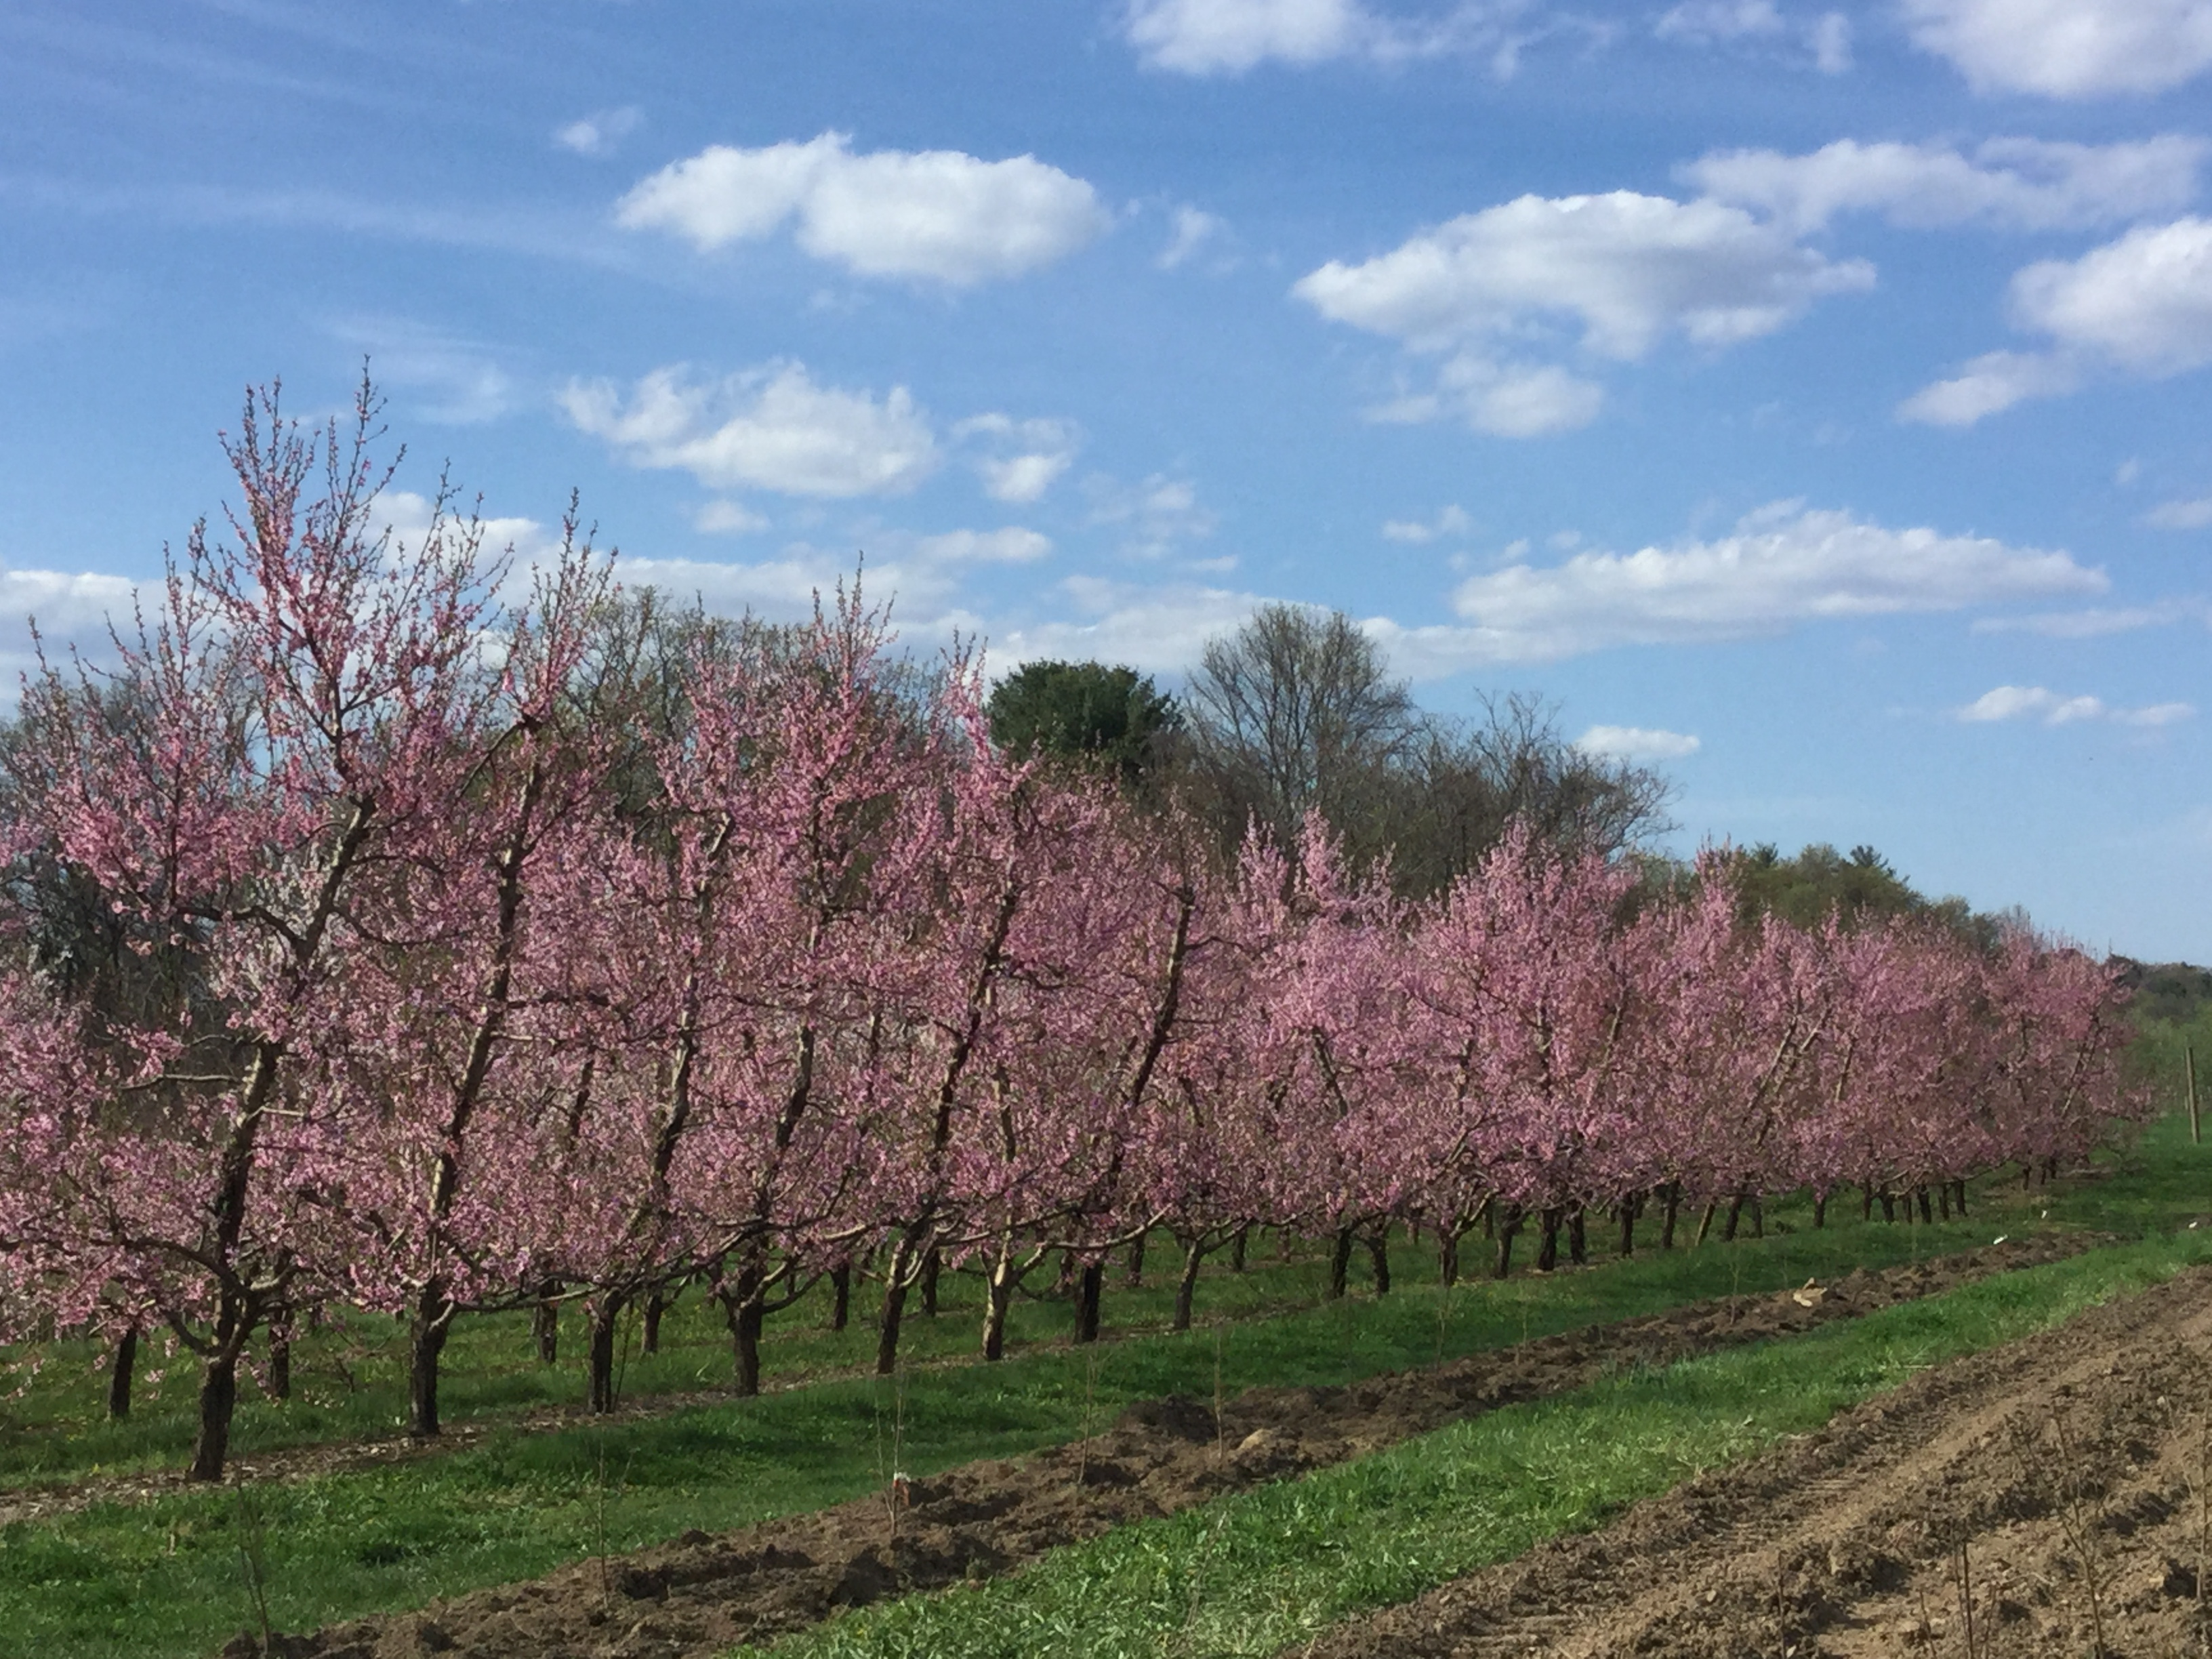 Fix bros fruit farm, hudson ny, peach blossoms